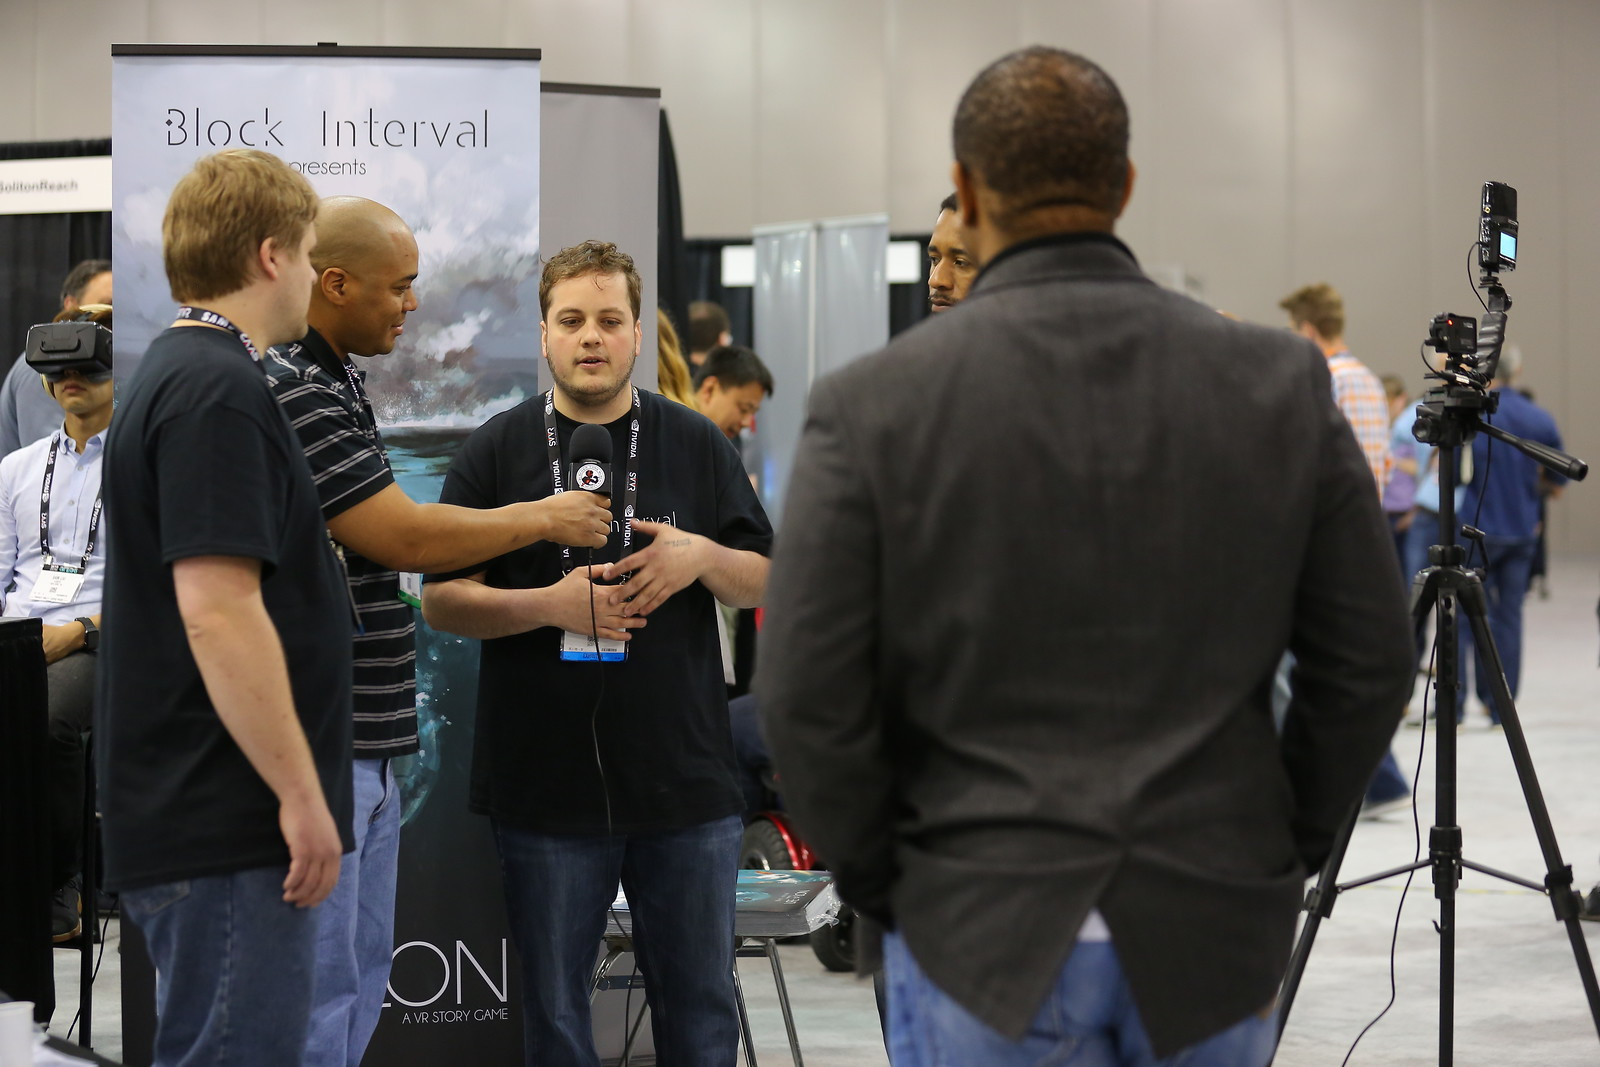 In April of 2016, Block Interval demoed Life of Lon at SVVR in Silicon Valley.